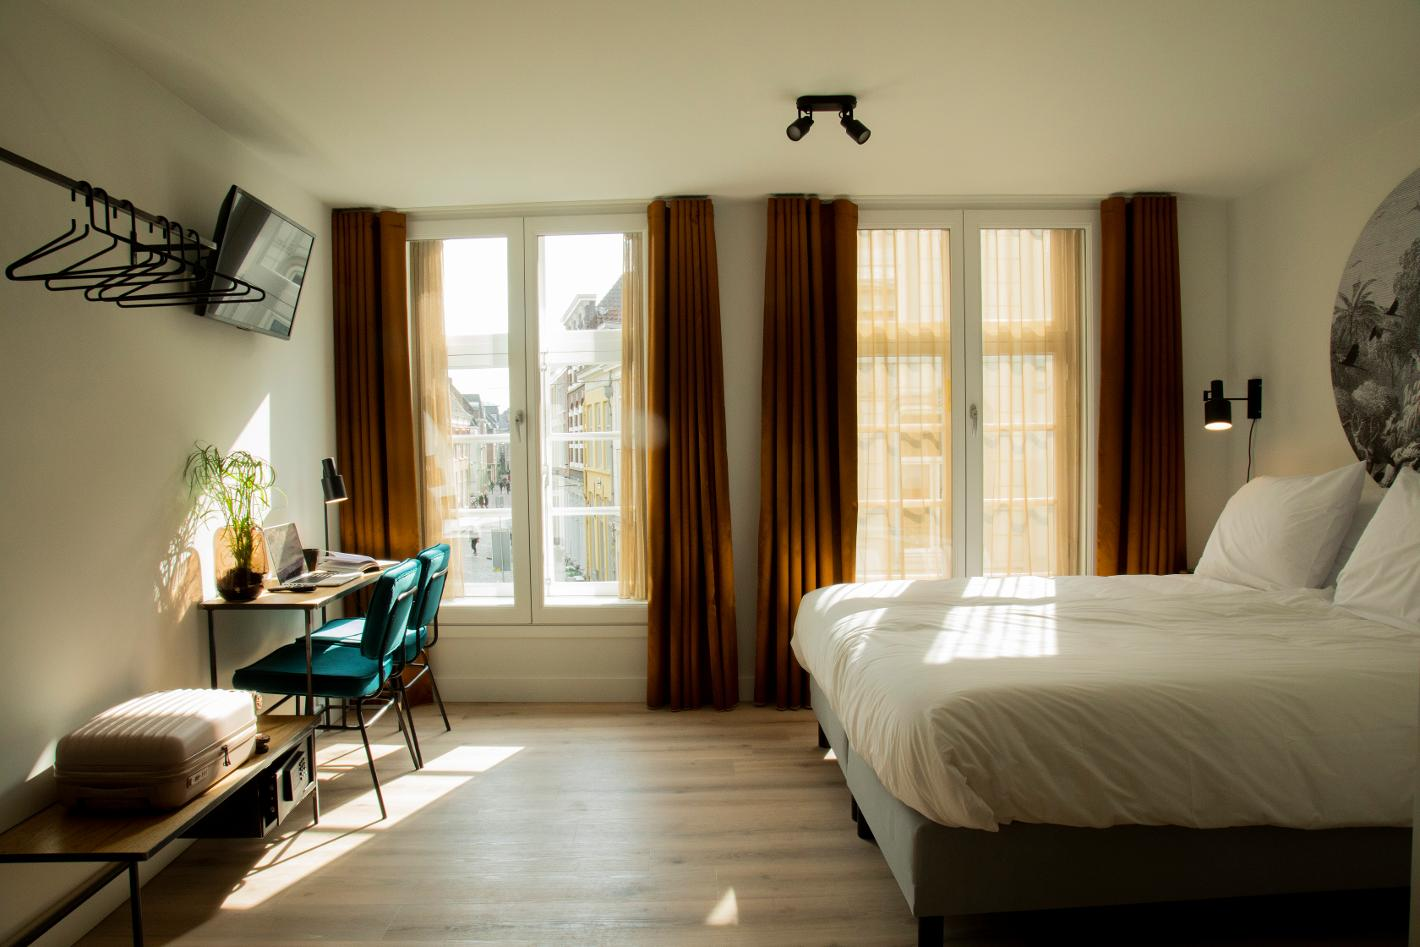 Photo Hotel Haverkist in Den Bosch, Sleep, Sleep - #2